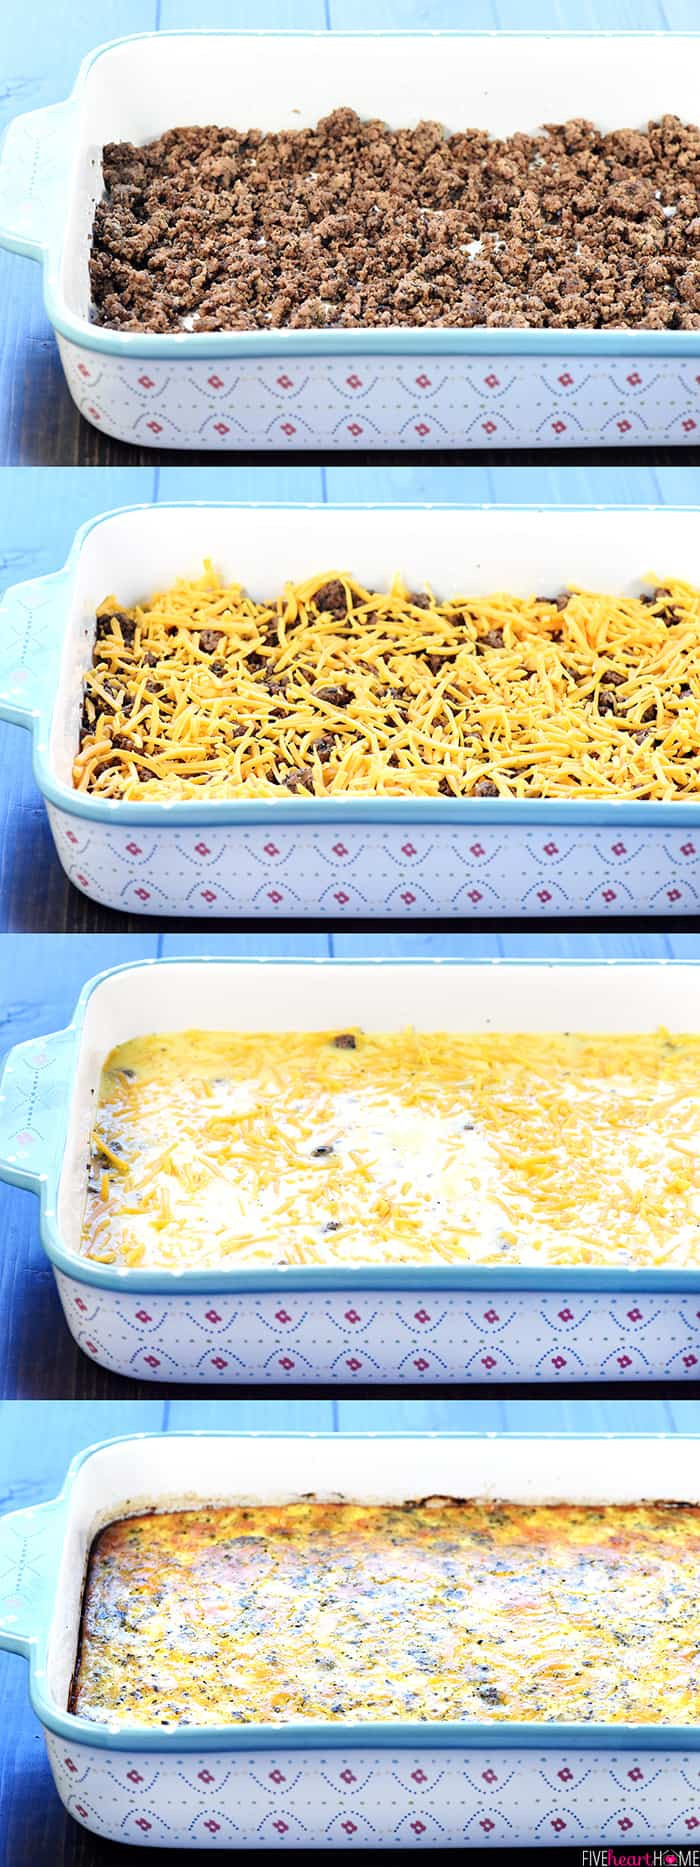 Collage showing steps: ground beef in dish, topped with cheese, topped with eggs, and then baked